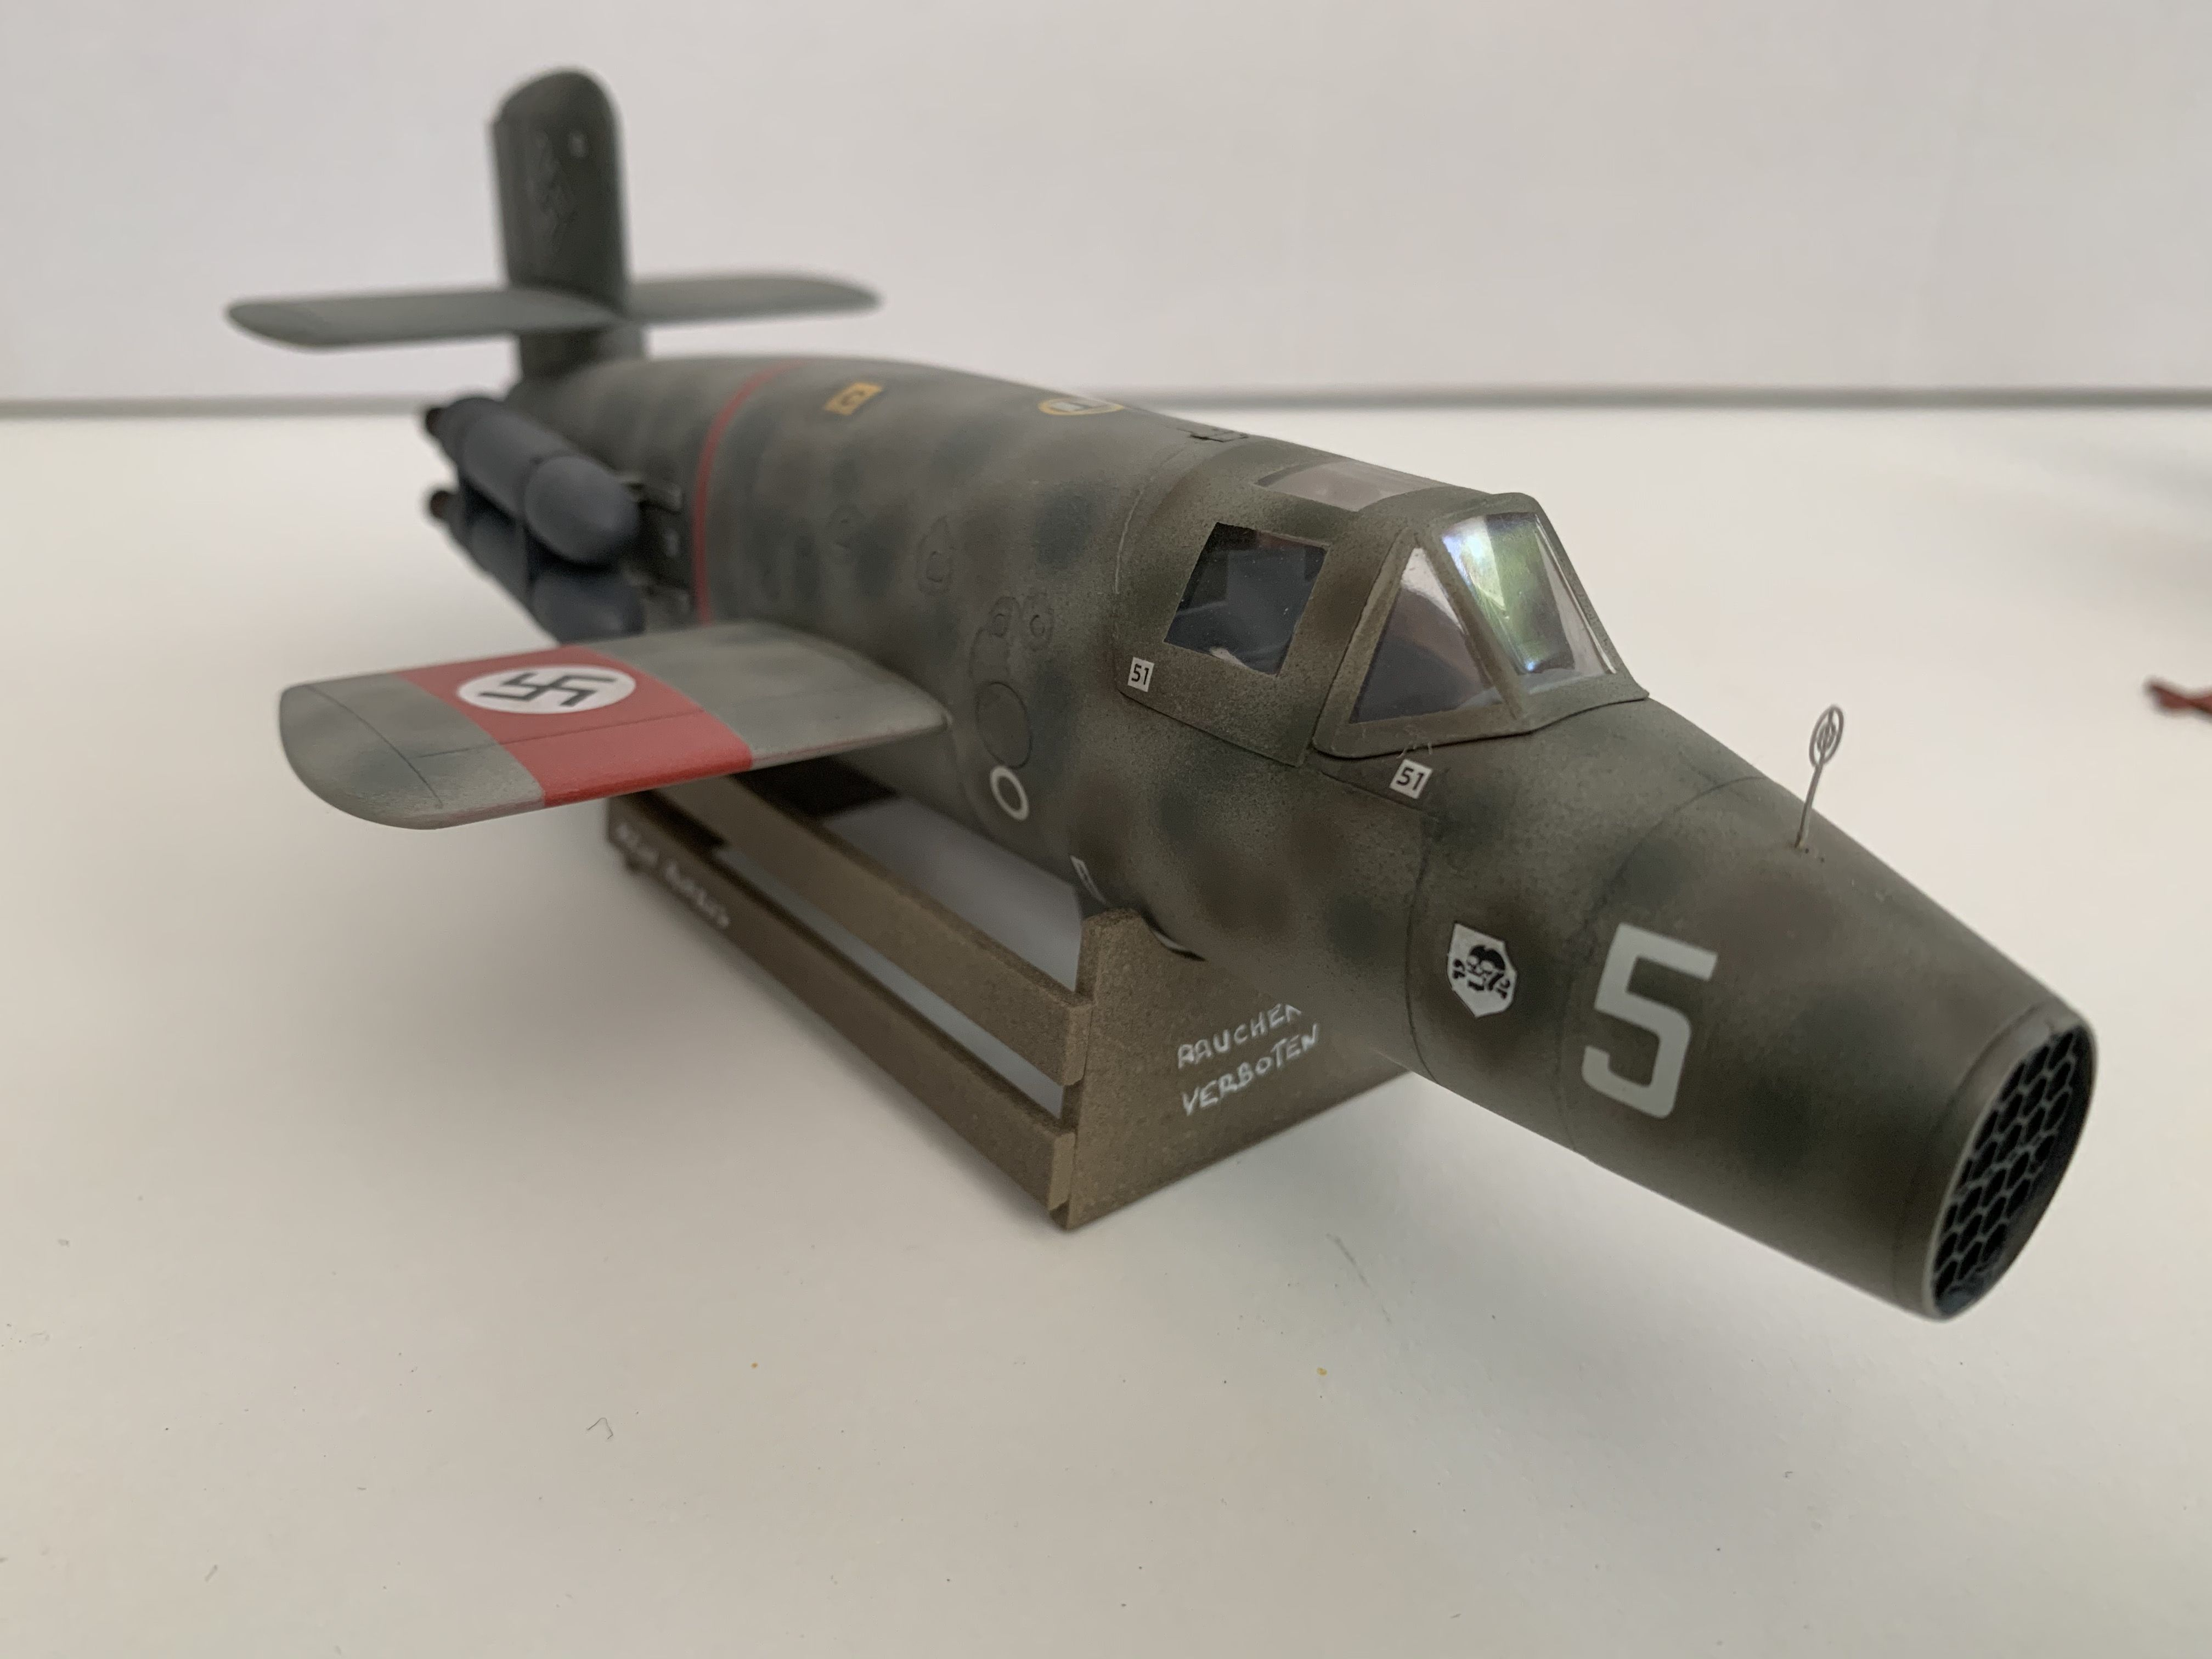 Pin by Edward on Ed's 1/32 Scale Models in 2020 Fighter